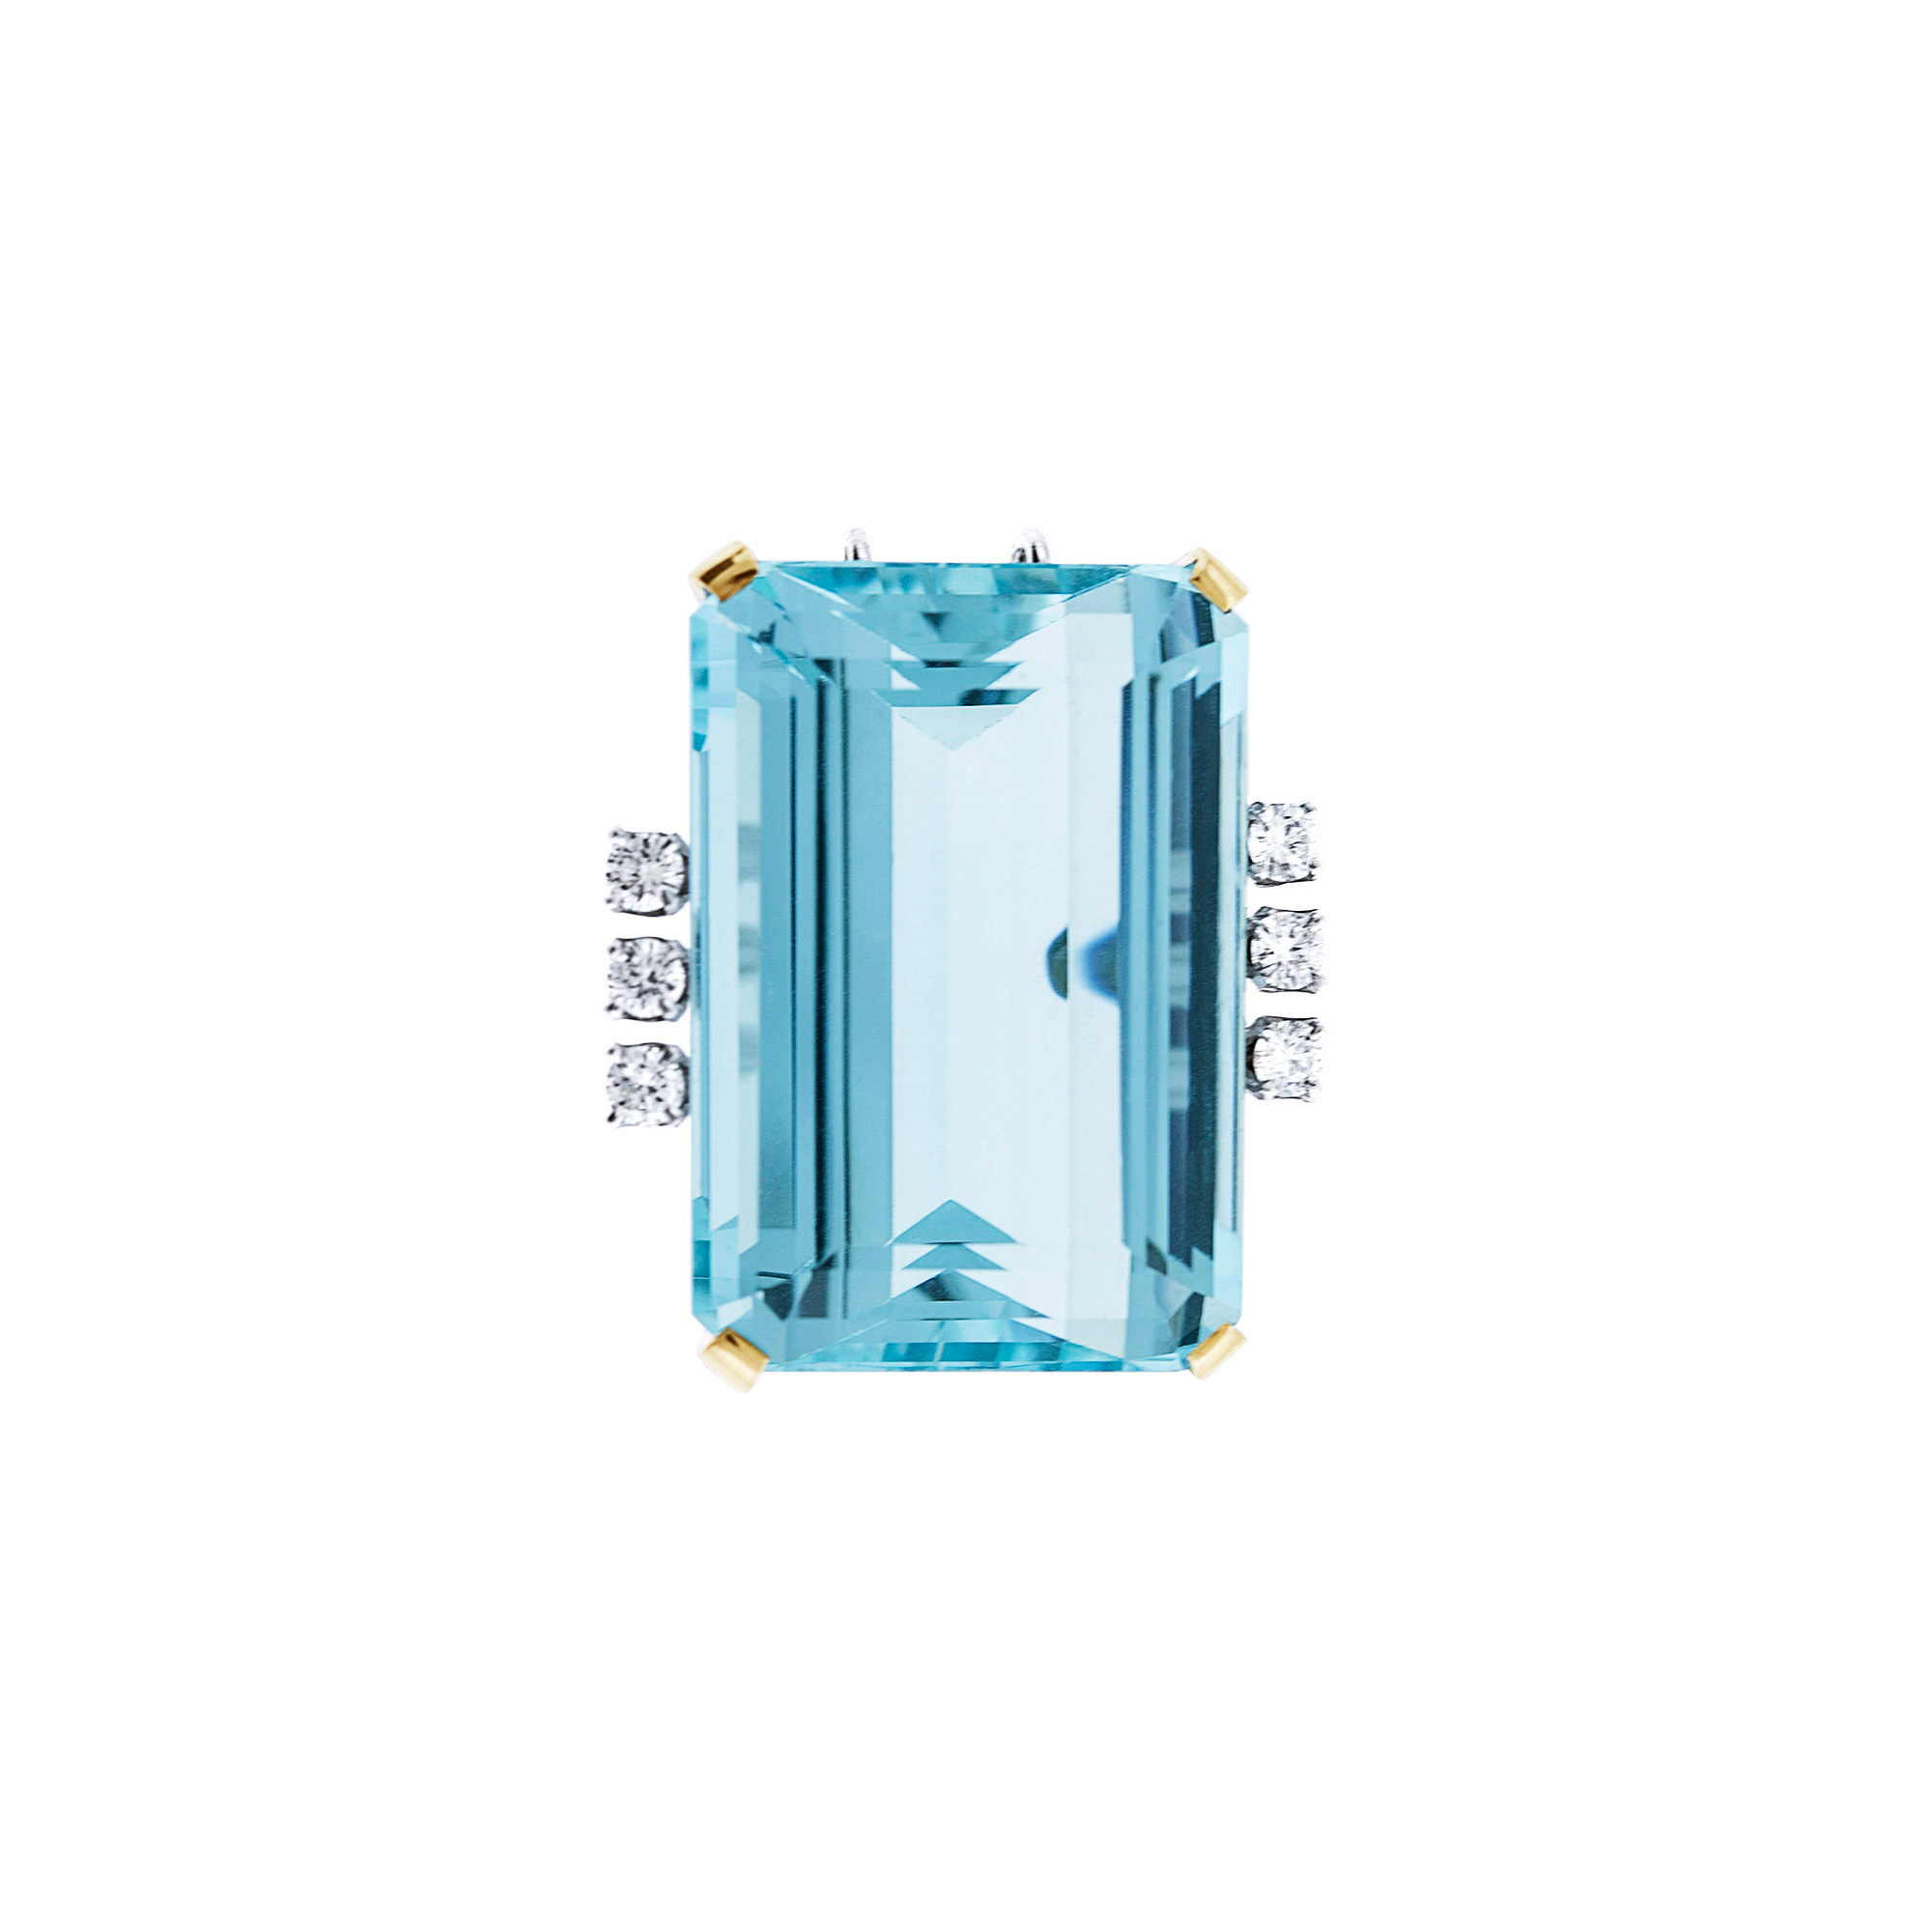 Lot image - White Gold, Aquamarine and Diamond Pendant